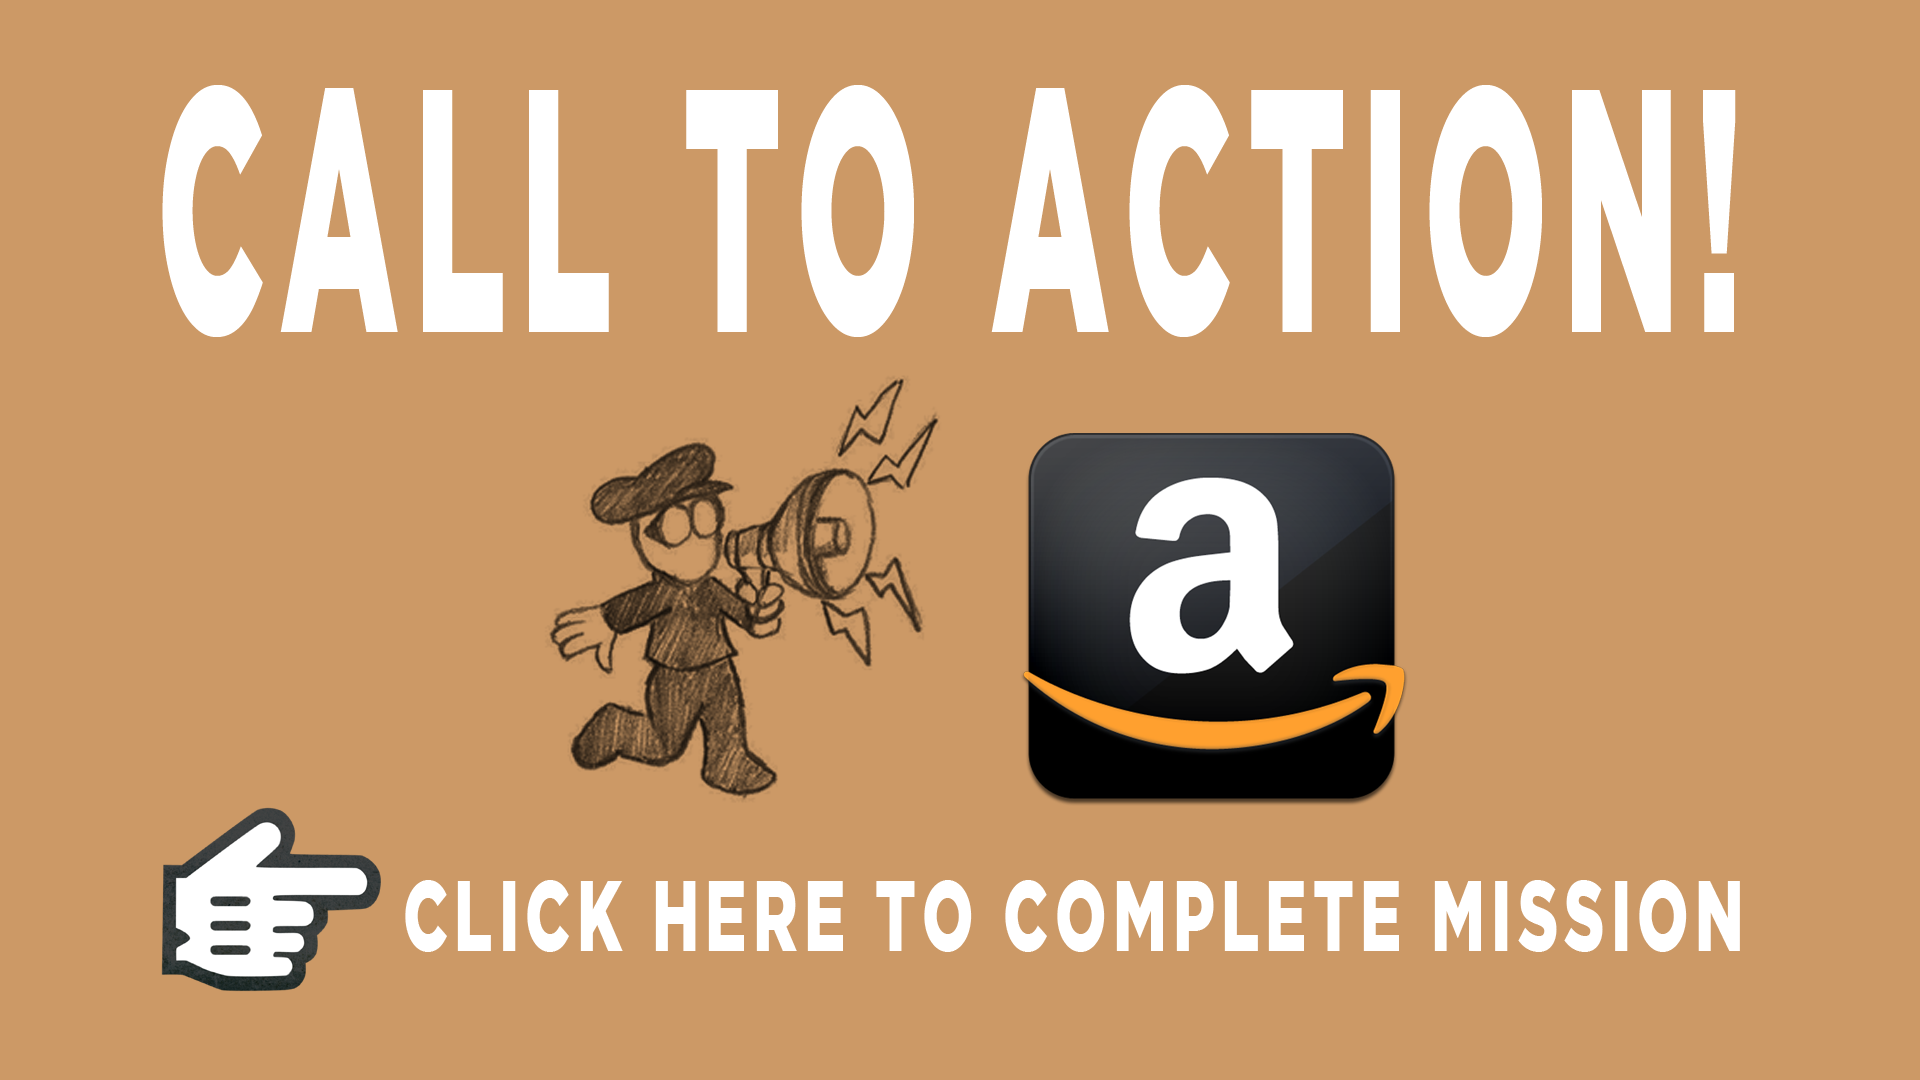 CALL TO ACTION BOX